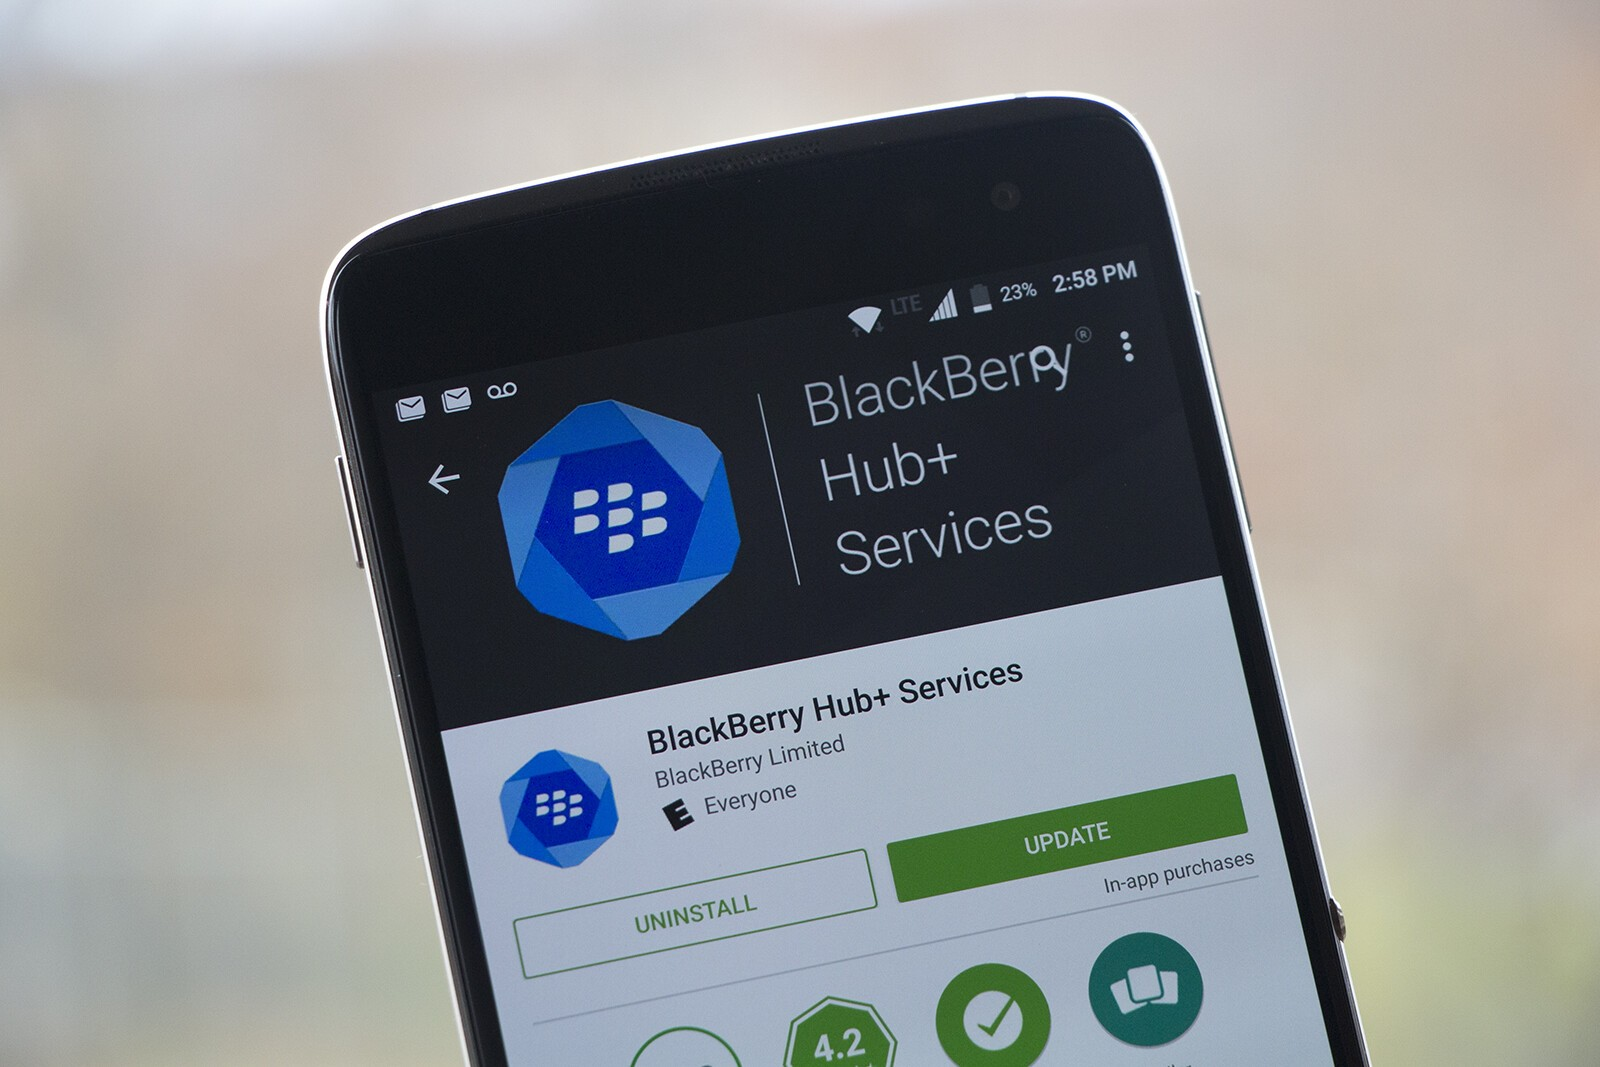 BlackBerry pushes latest build of Hub+ Services out to Google Play